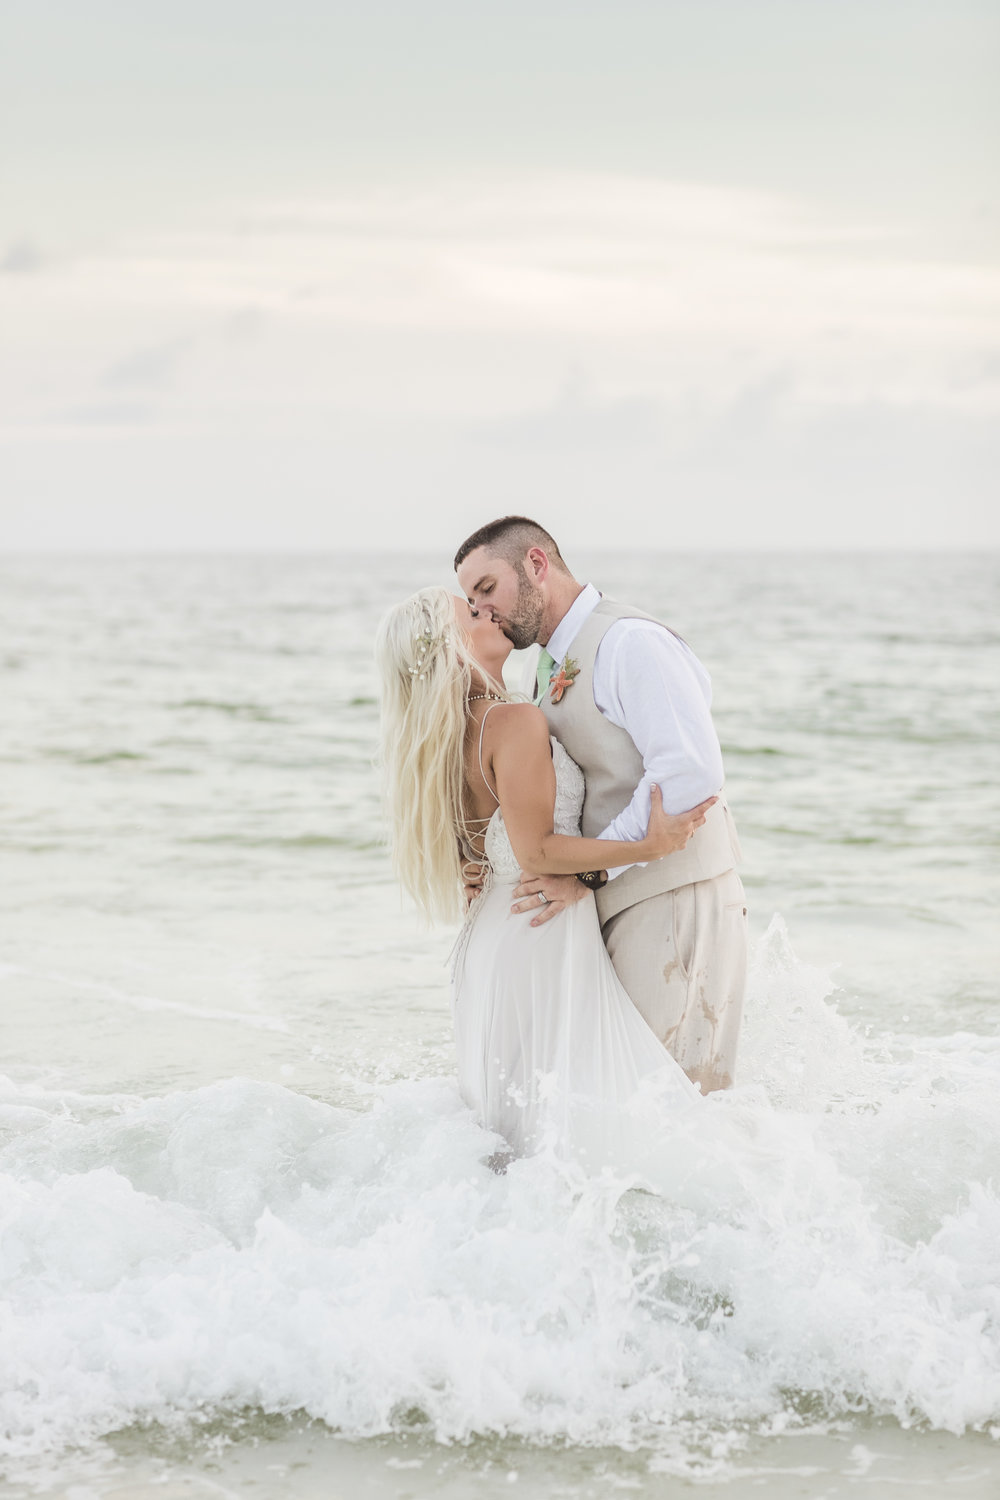 PREVIEWS-Jenna+Greg-069.jpg